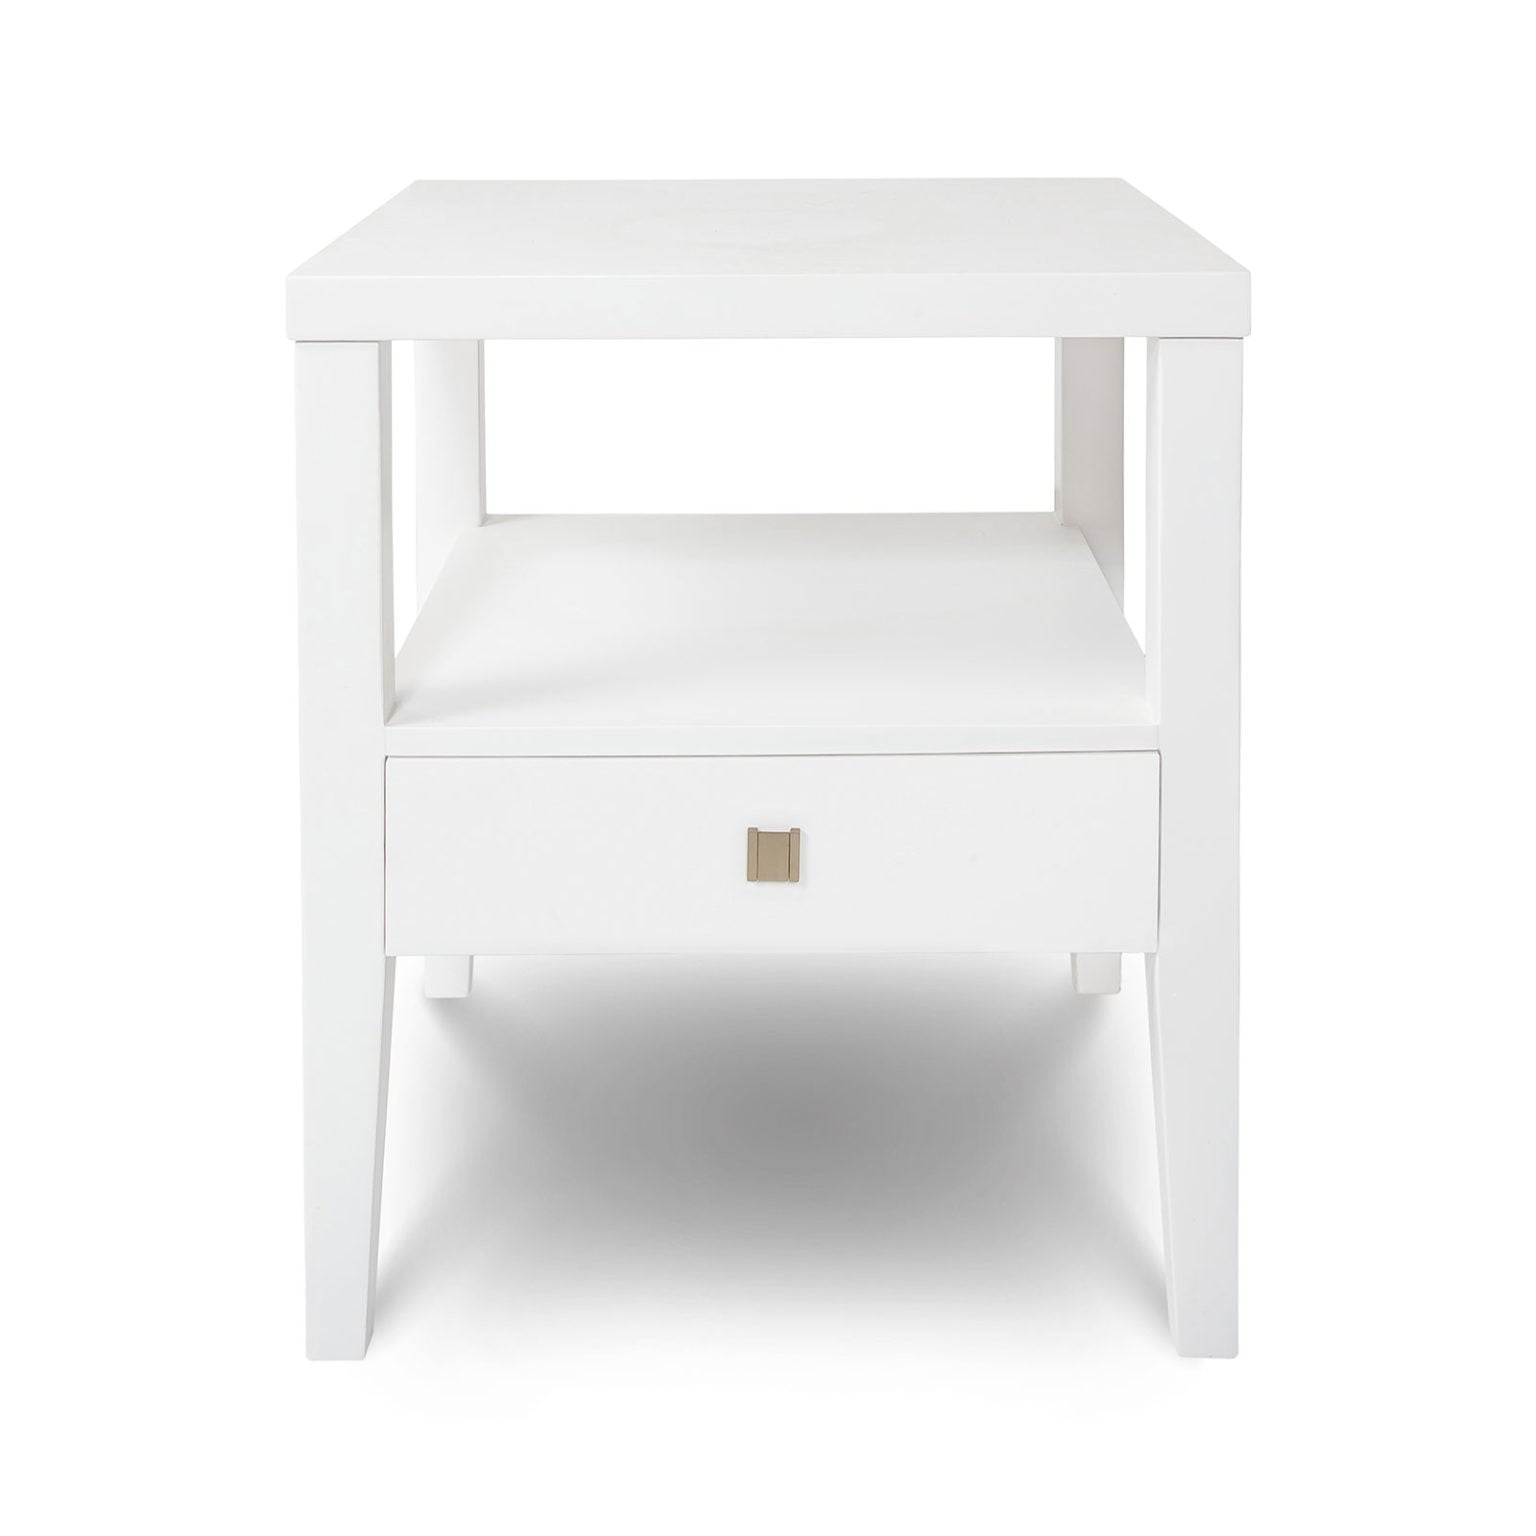 Hara 1 Drawer Accent Table - White